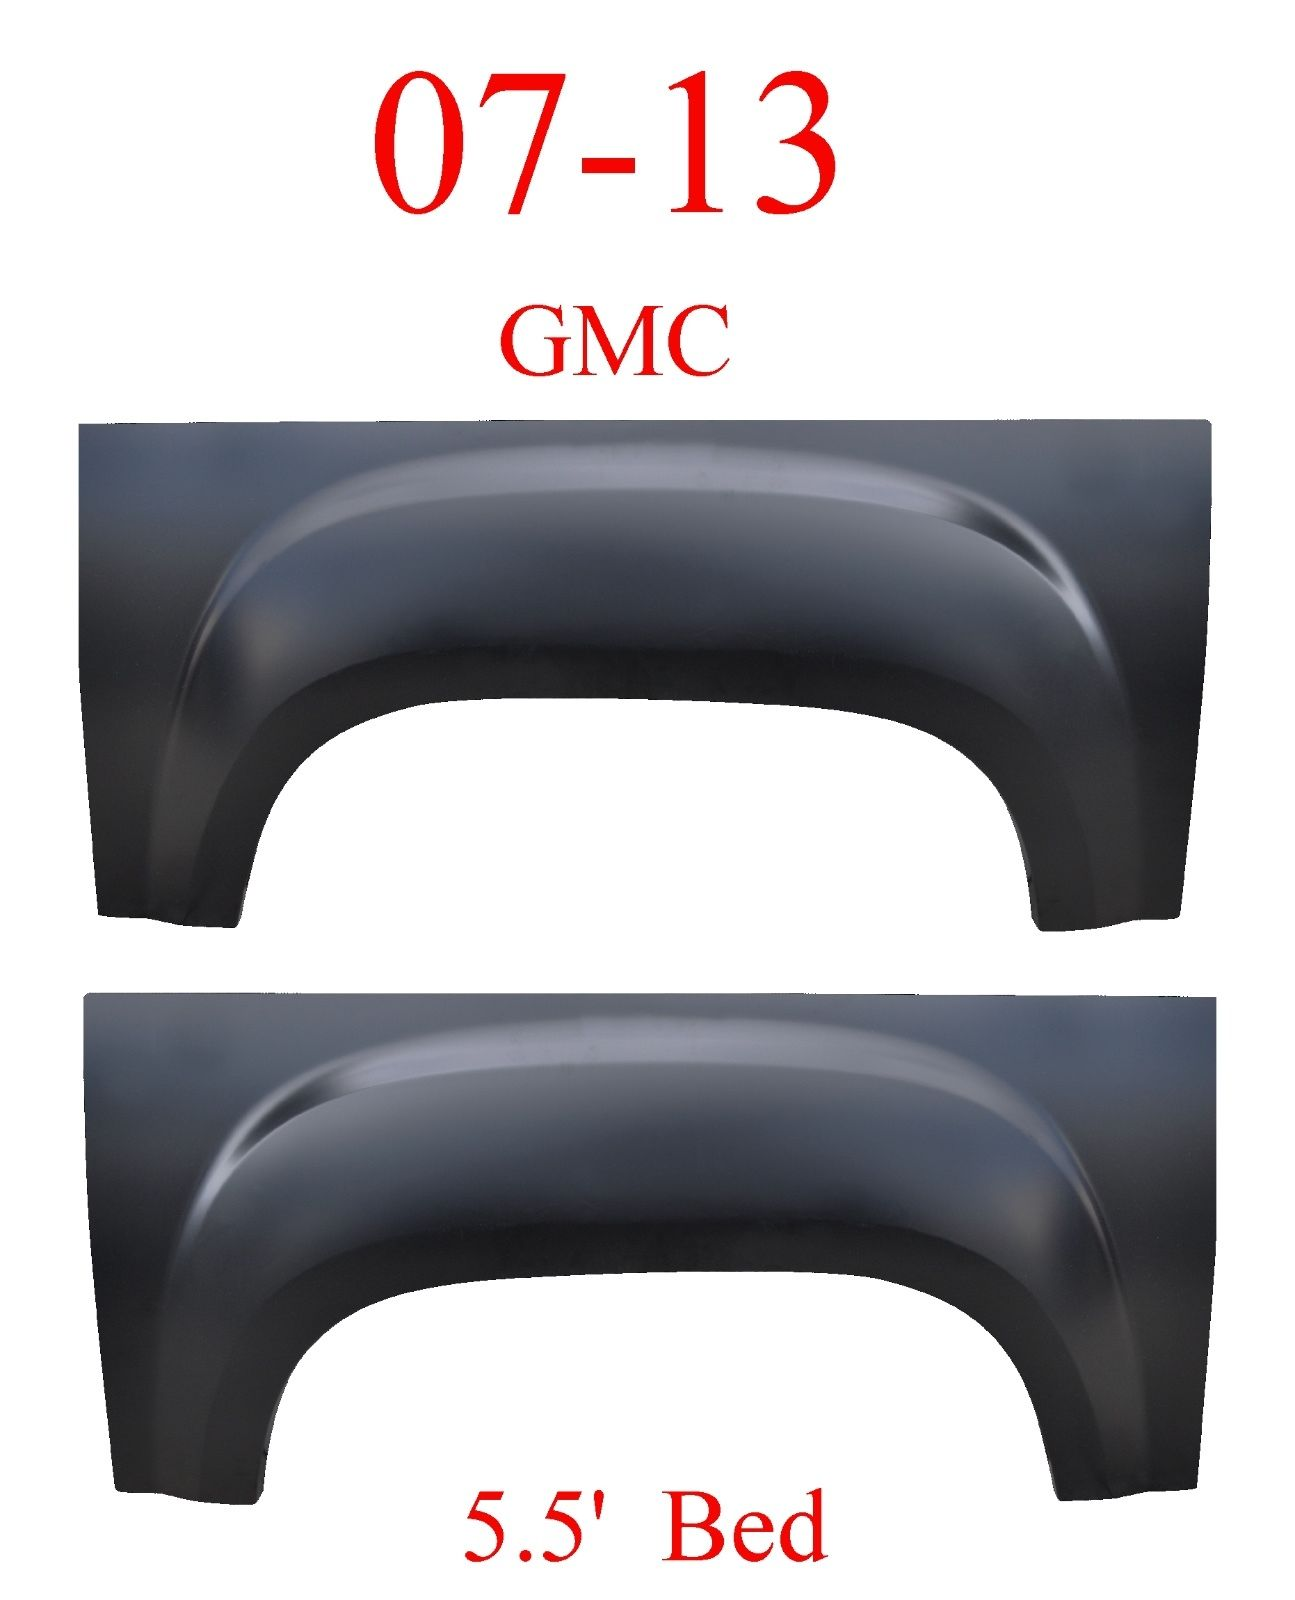 5.5' Bed GMC 07-13 Upper Wheel Arch Set